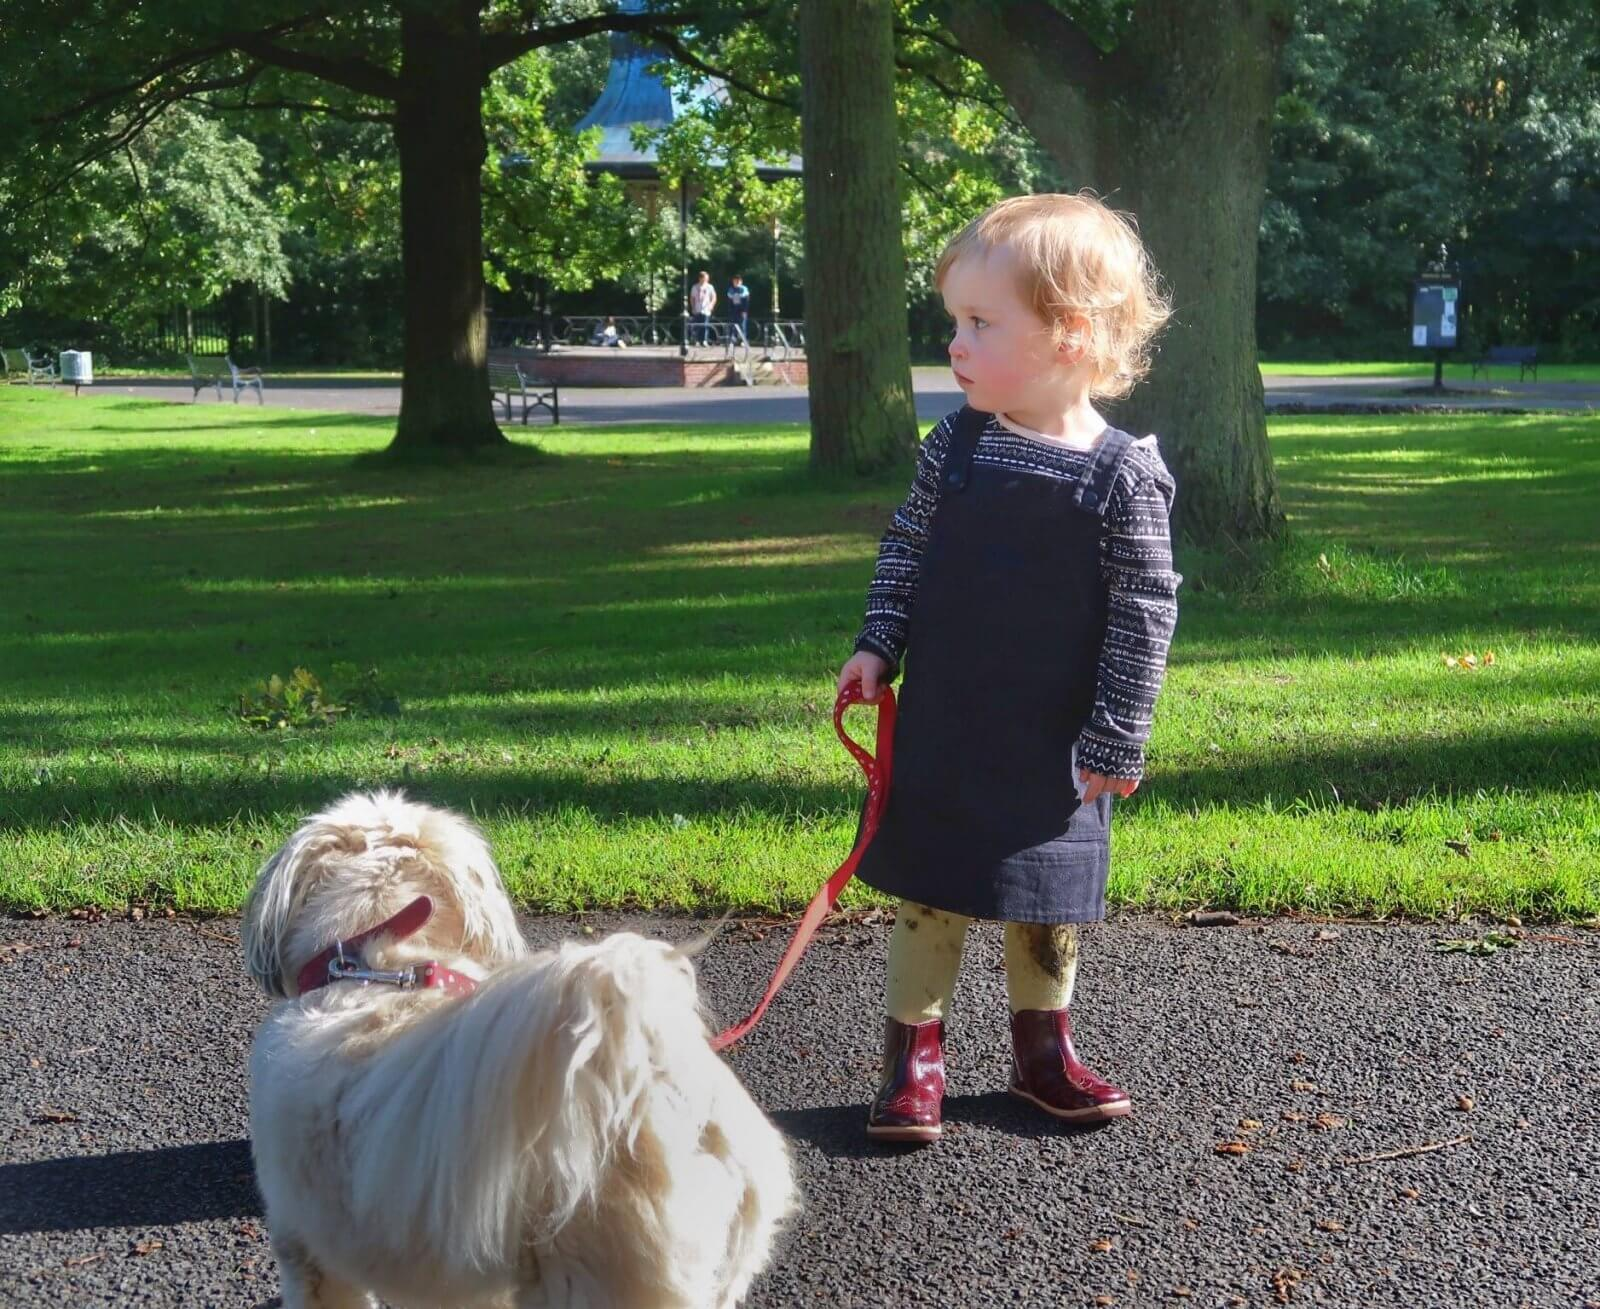 bobux review plum gloss boots toddler park dog